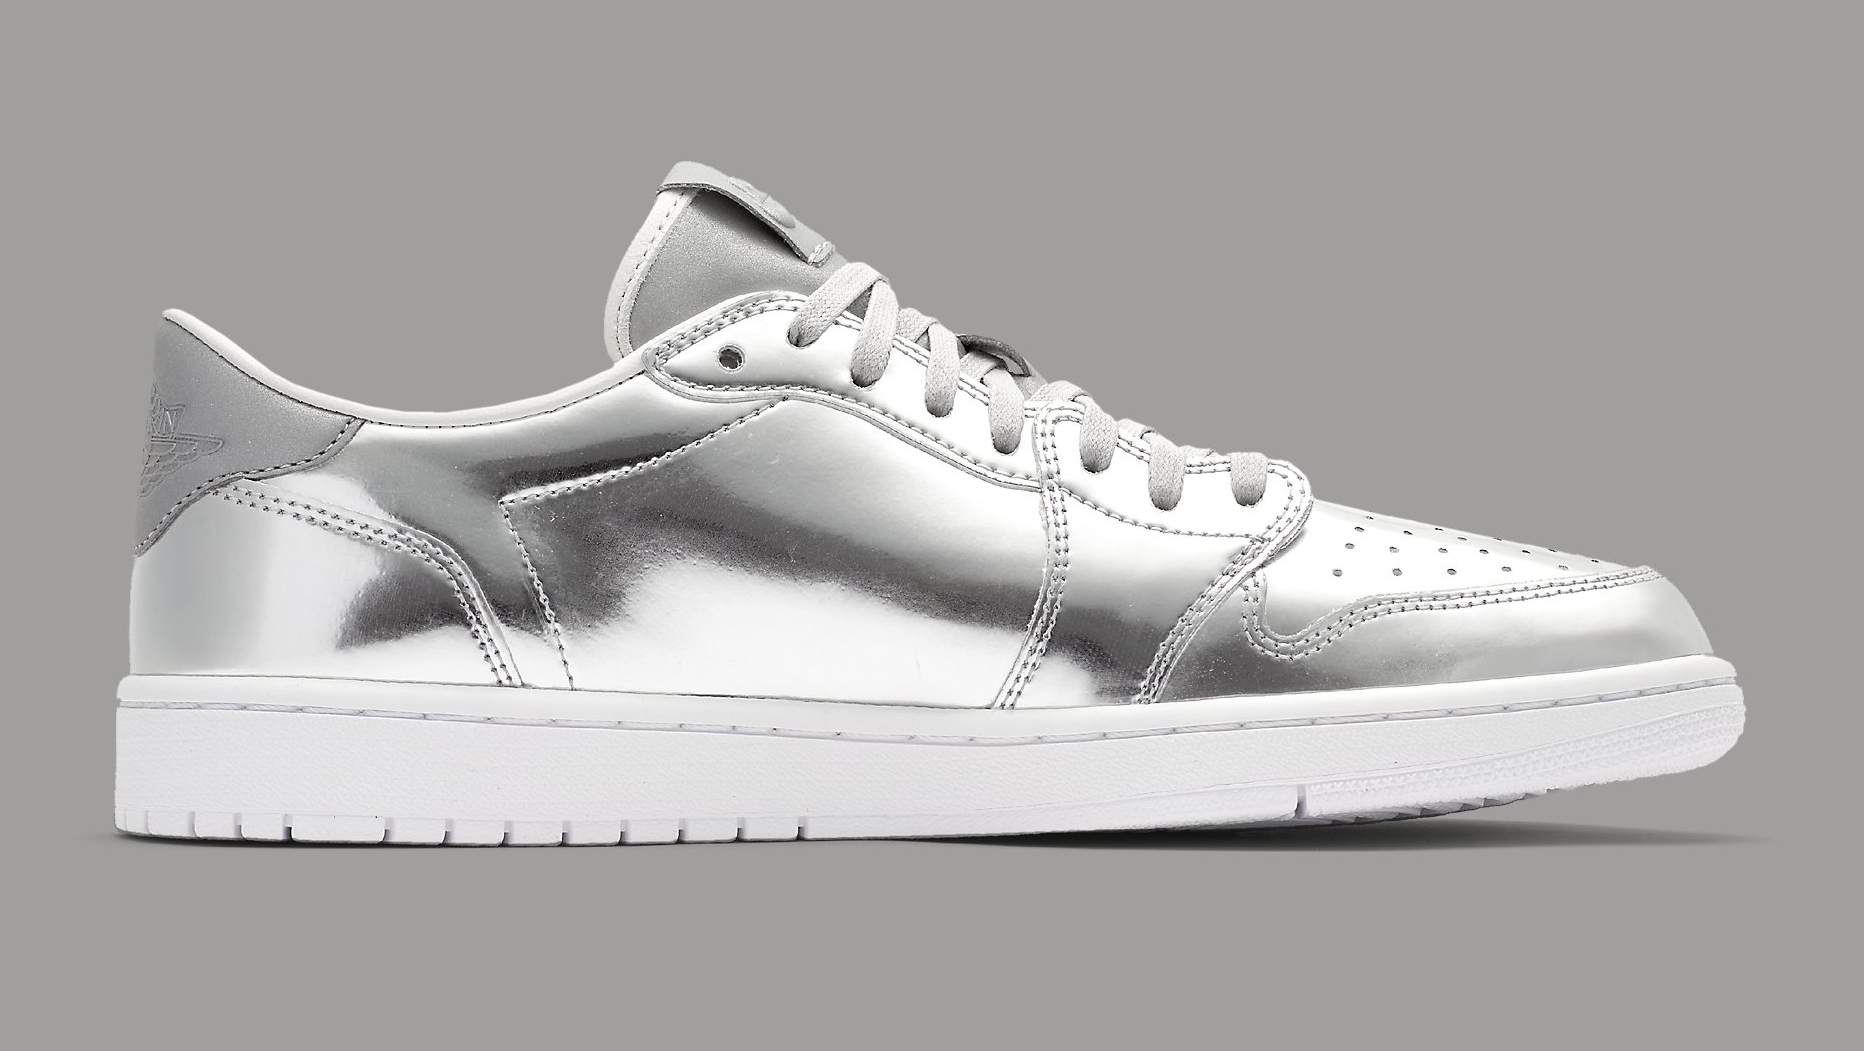 Pinnacle Jordan DateSole Silver Release 1 Air Low Collector lKF1JTc